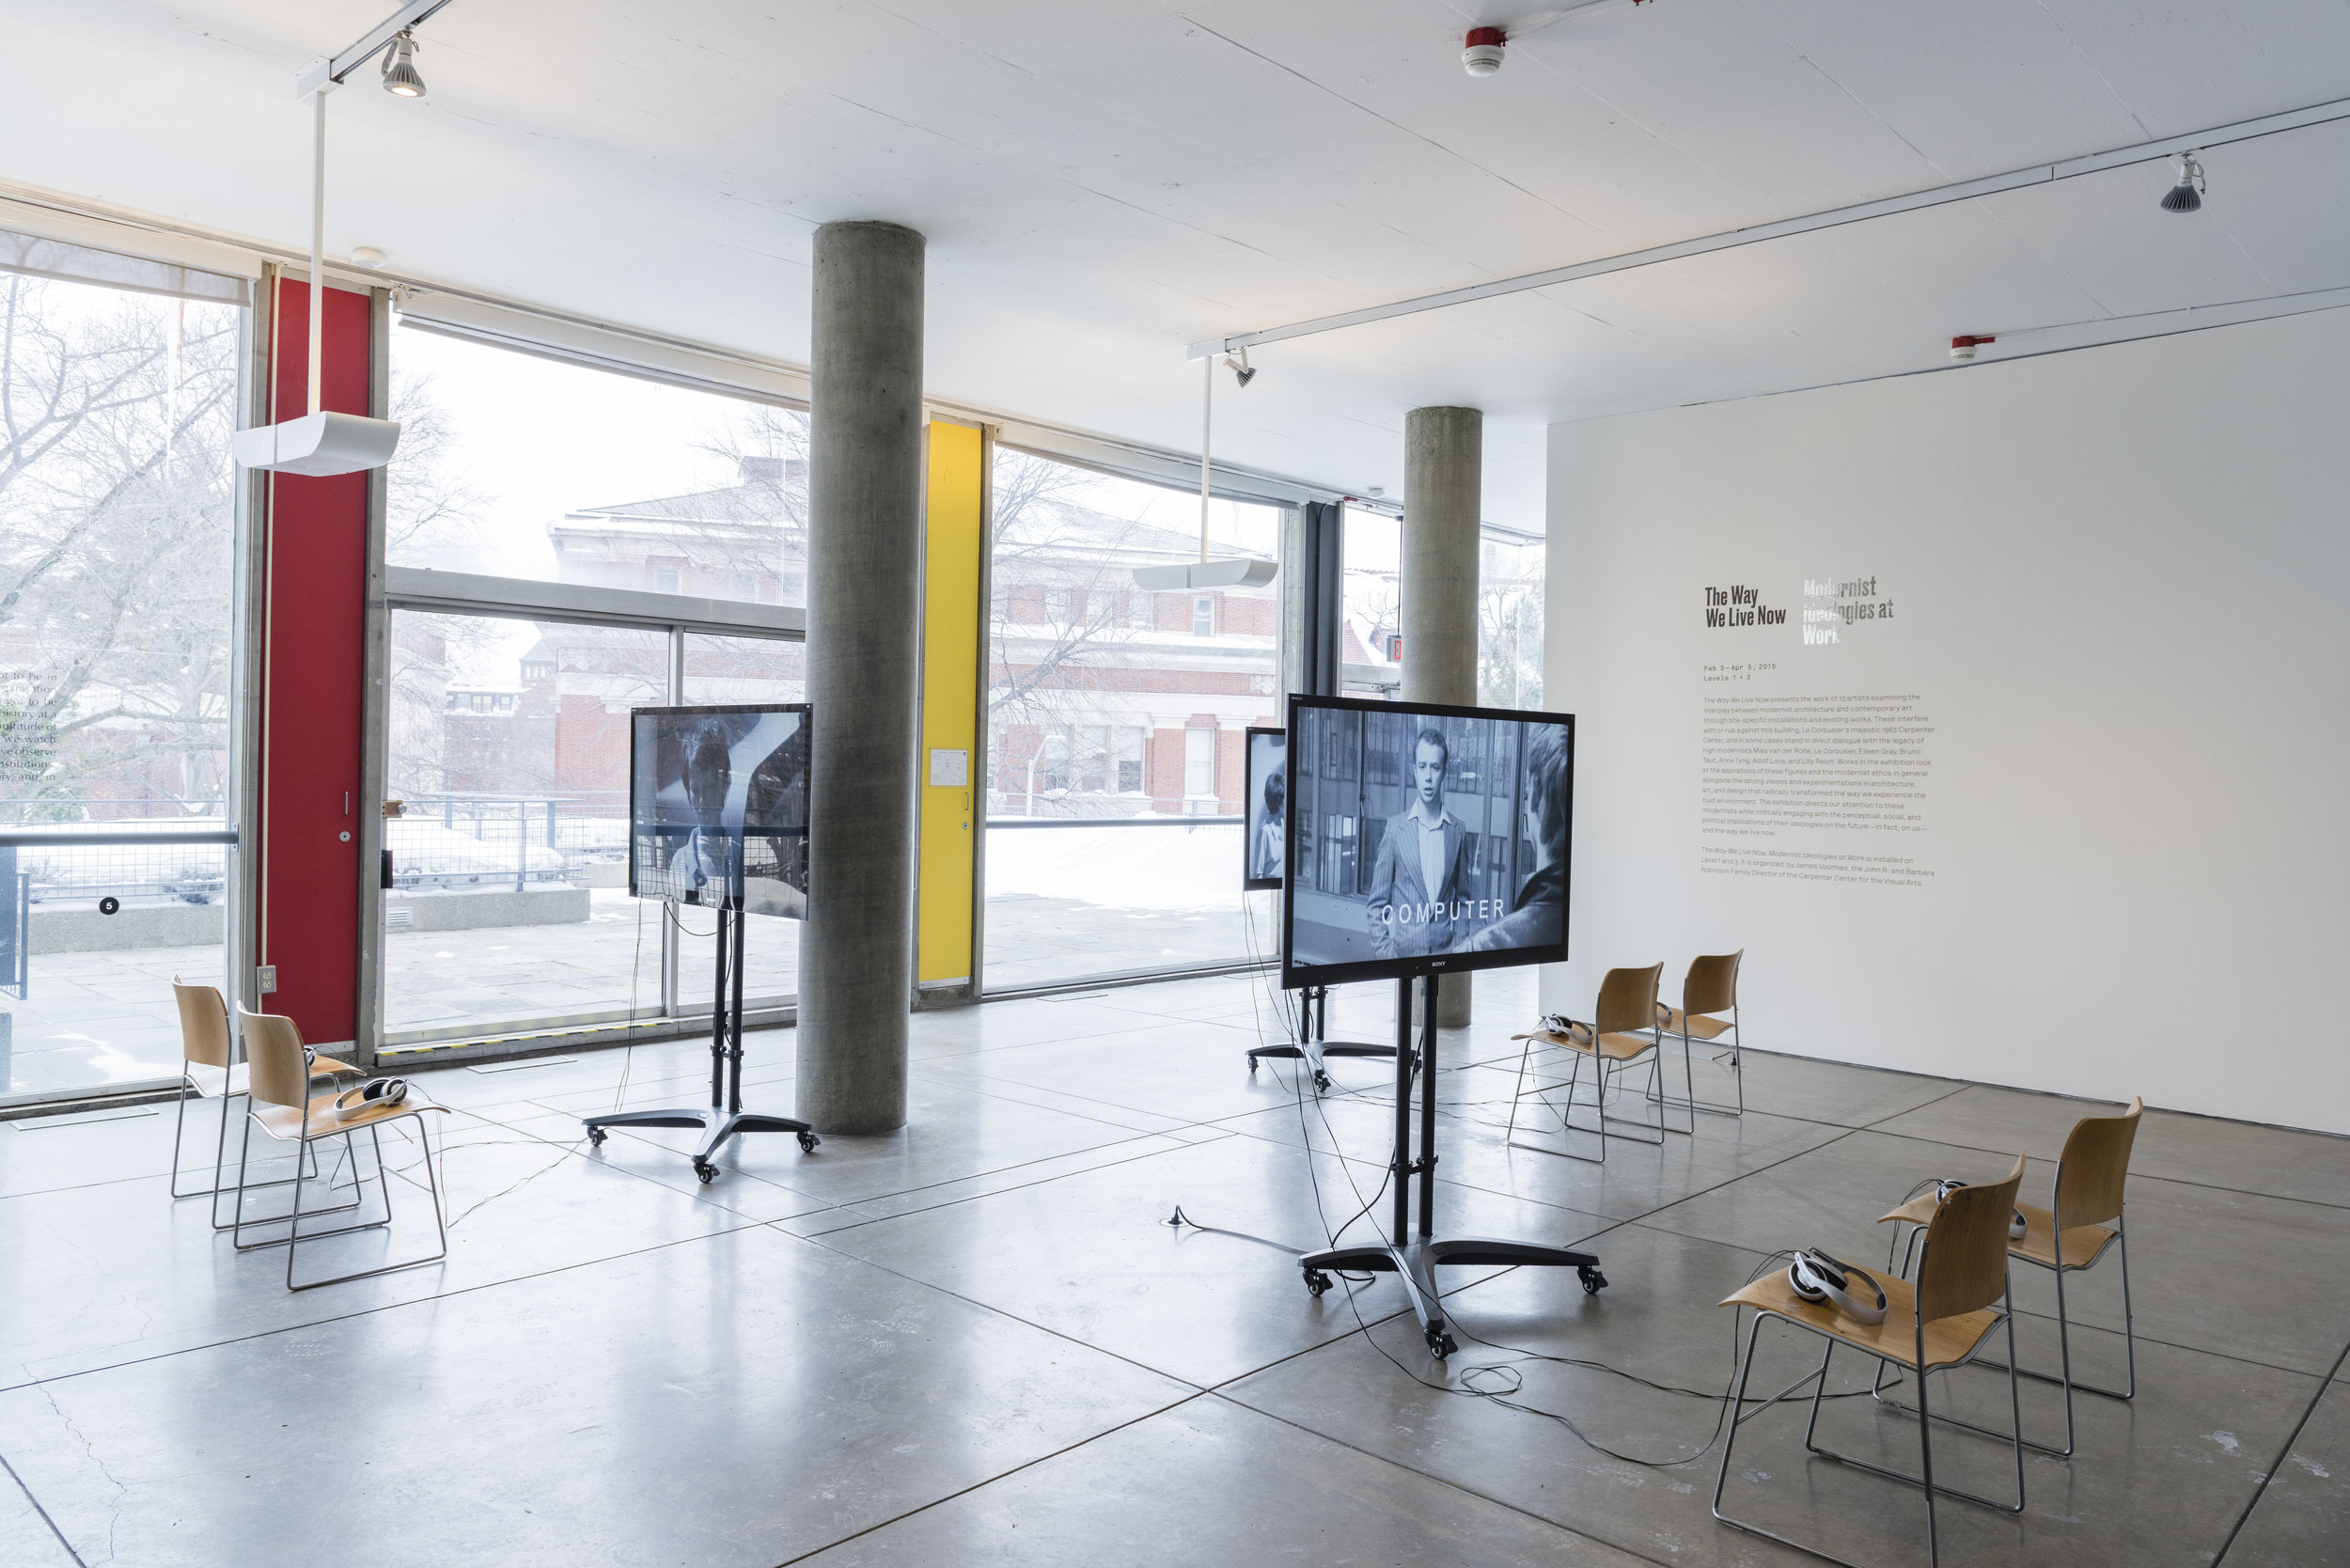 Gerard Byrne,  Subject , 2009. Installation view. Three-channel video shown on monitors and vinyl wall text. 27 × 32 feet. Commissioned by the Henry Moore Institute, Leeds, England. Courtesy the artist and Green on Red Gallery, Dublin.